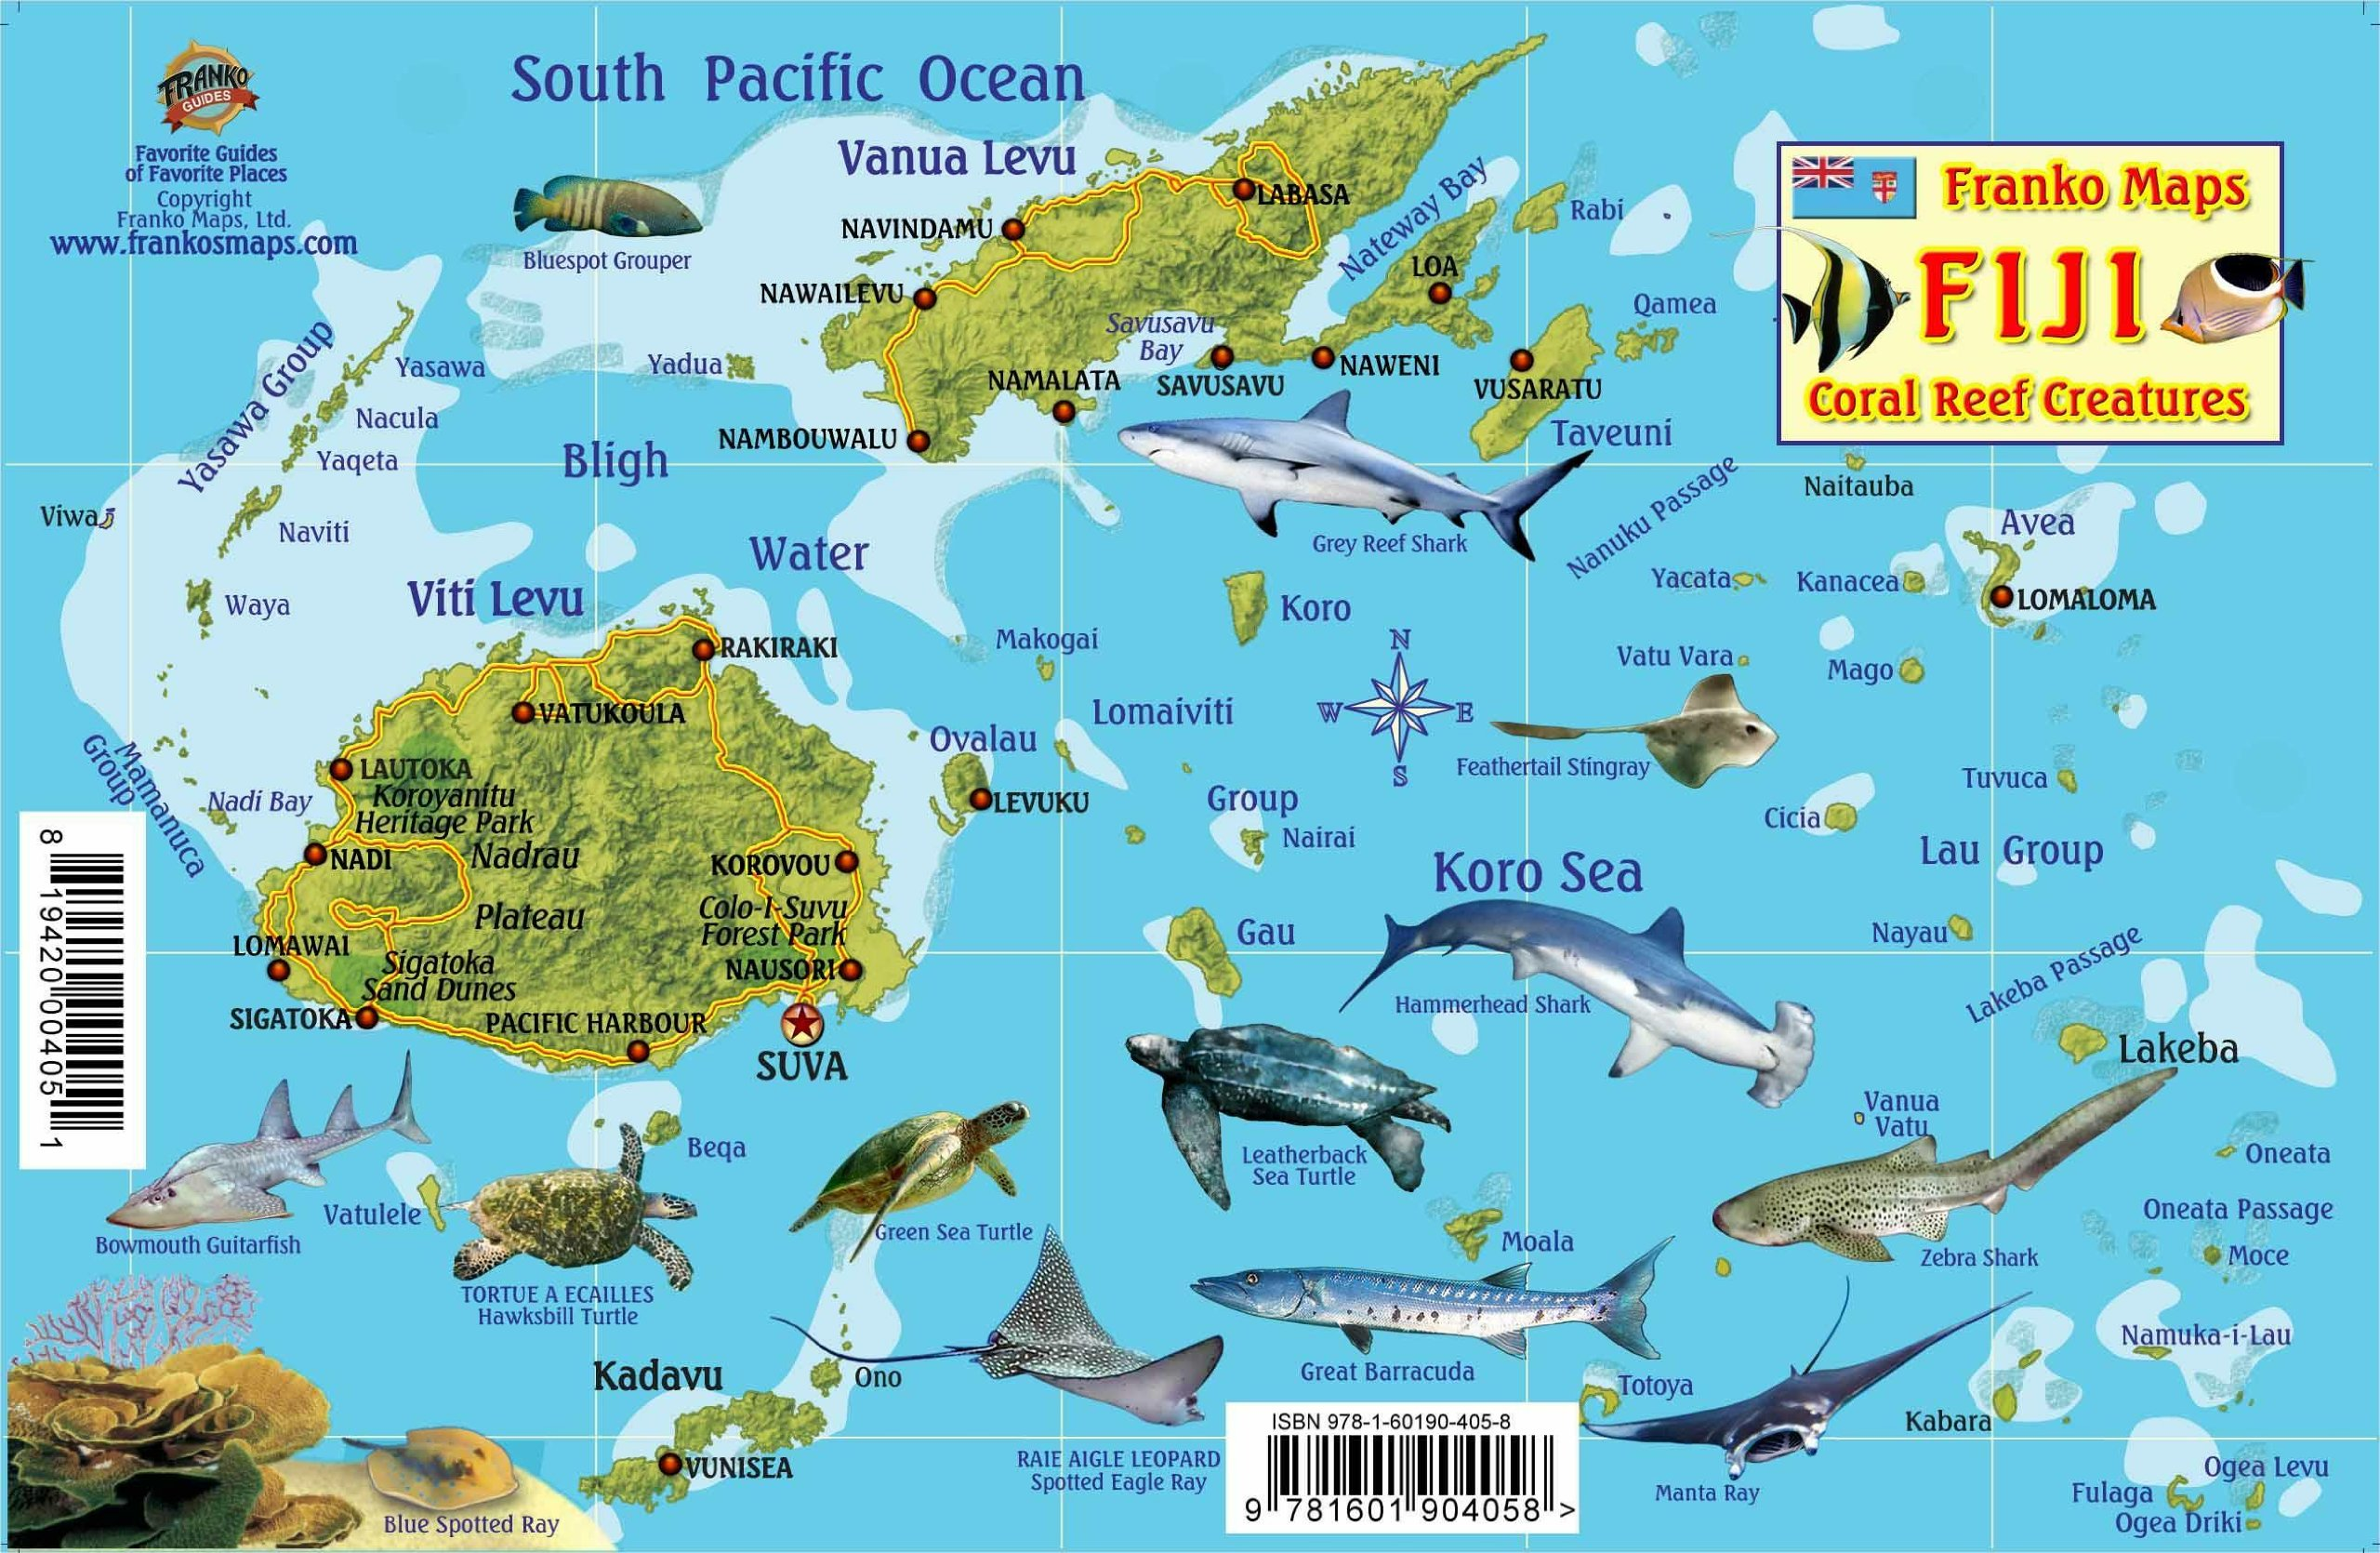 Fiji map reef creatures guide franko maps laminated fish card fiji map reef creatures guide franko maps laminated fish card franko maps ltd 9781601904058 amazon books gumiabroncs